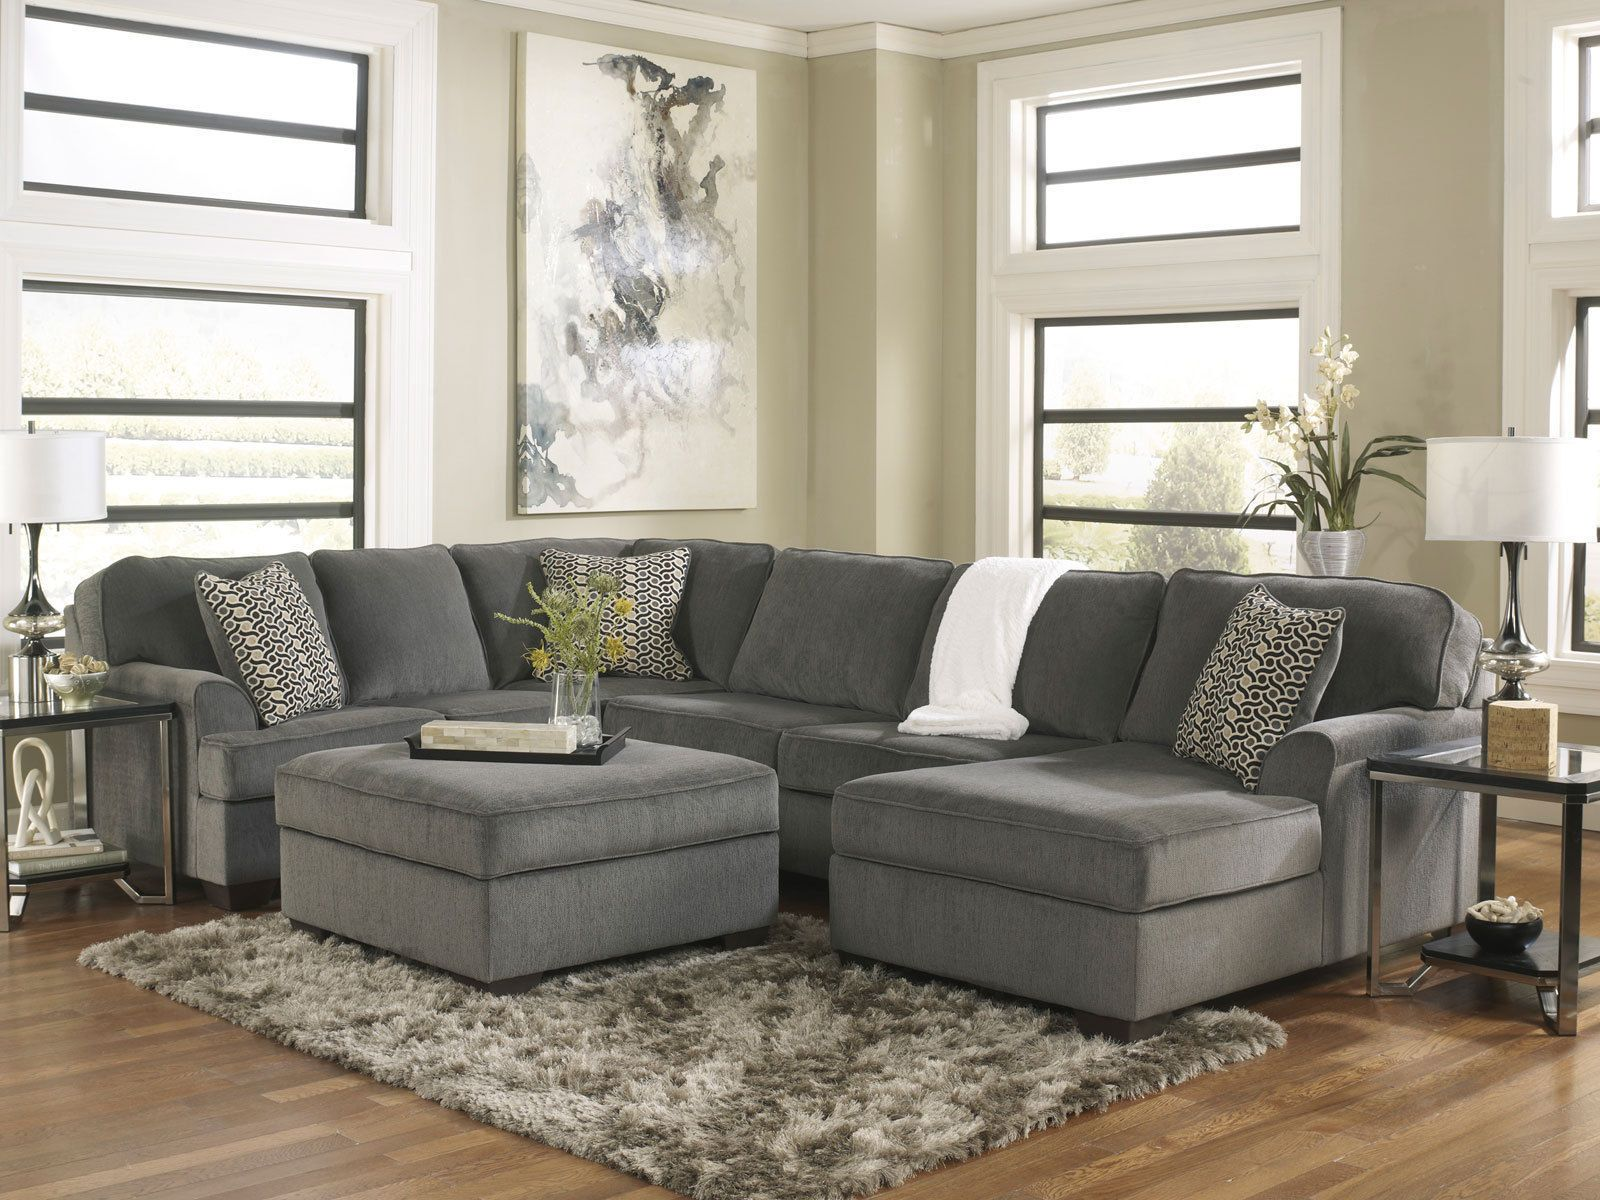 sole-oversized modern gray fabric sofa couch sectional set living, Wohnzimmer dekoo